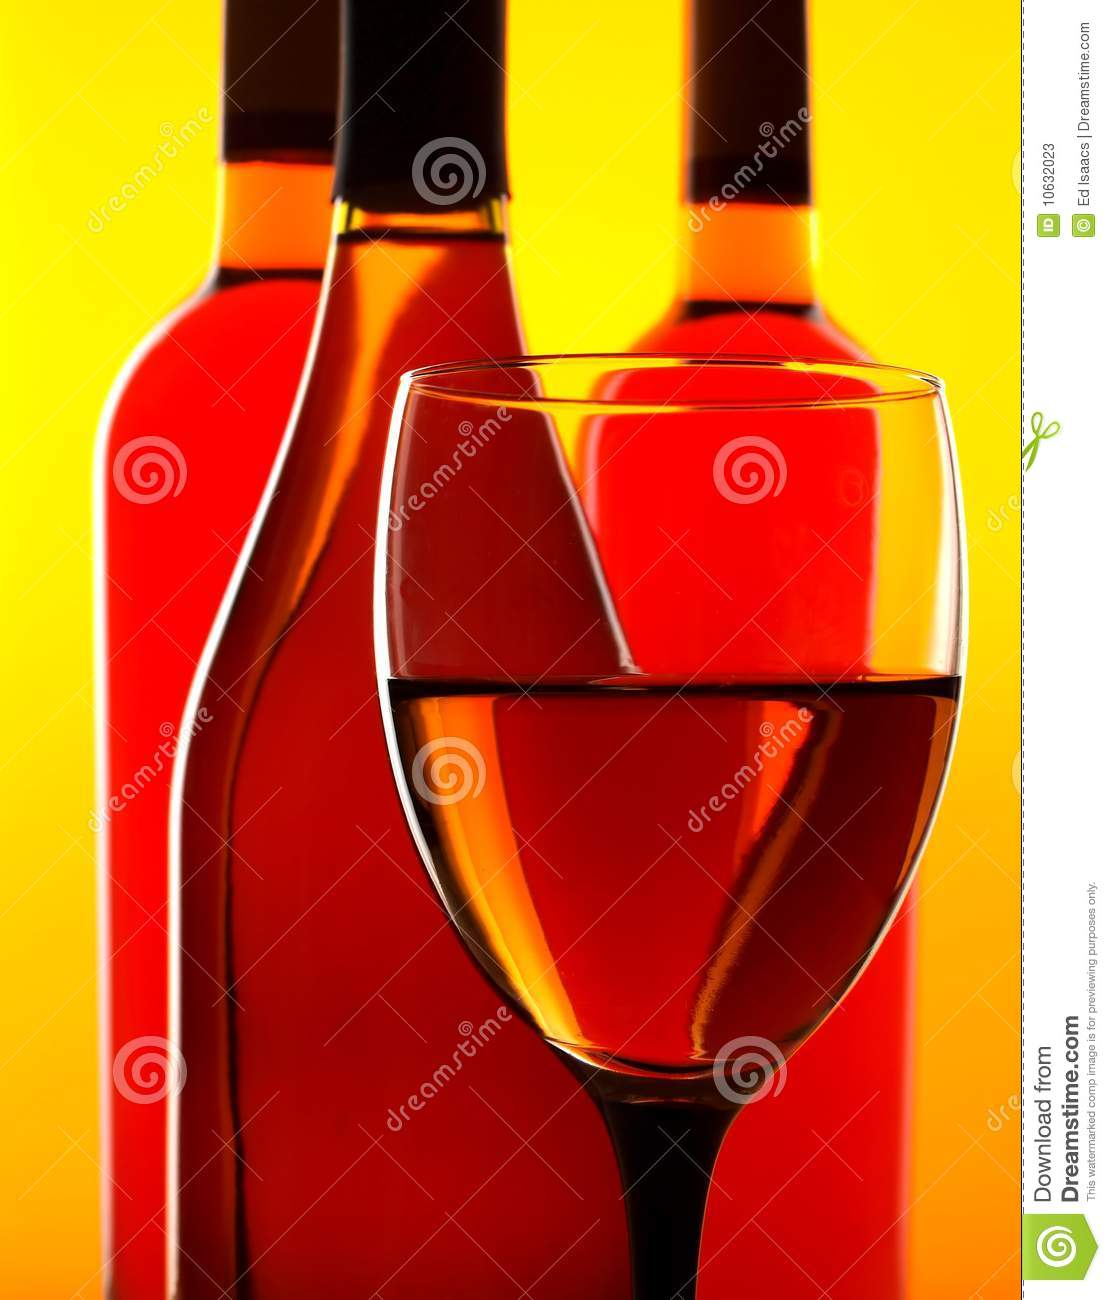 Abstract Bottle & Glass Background